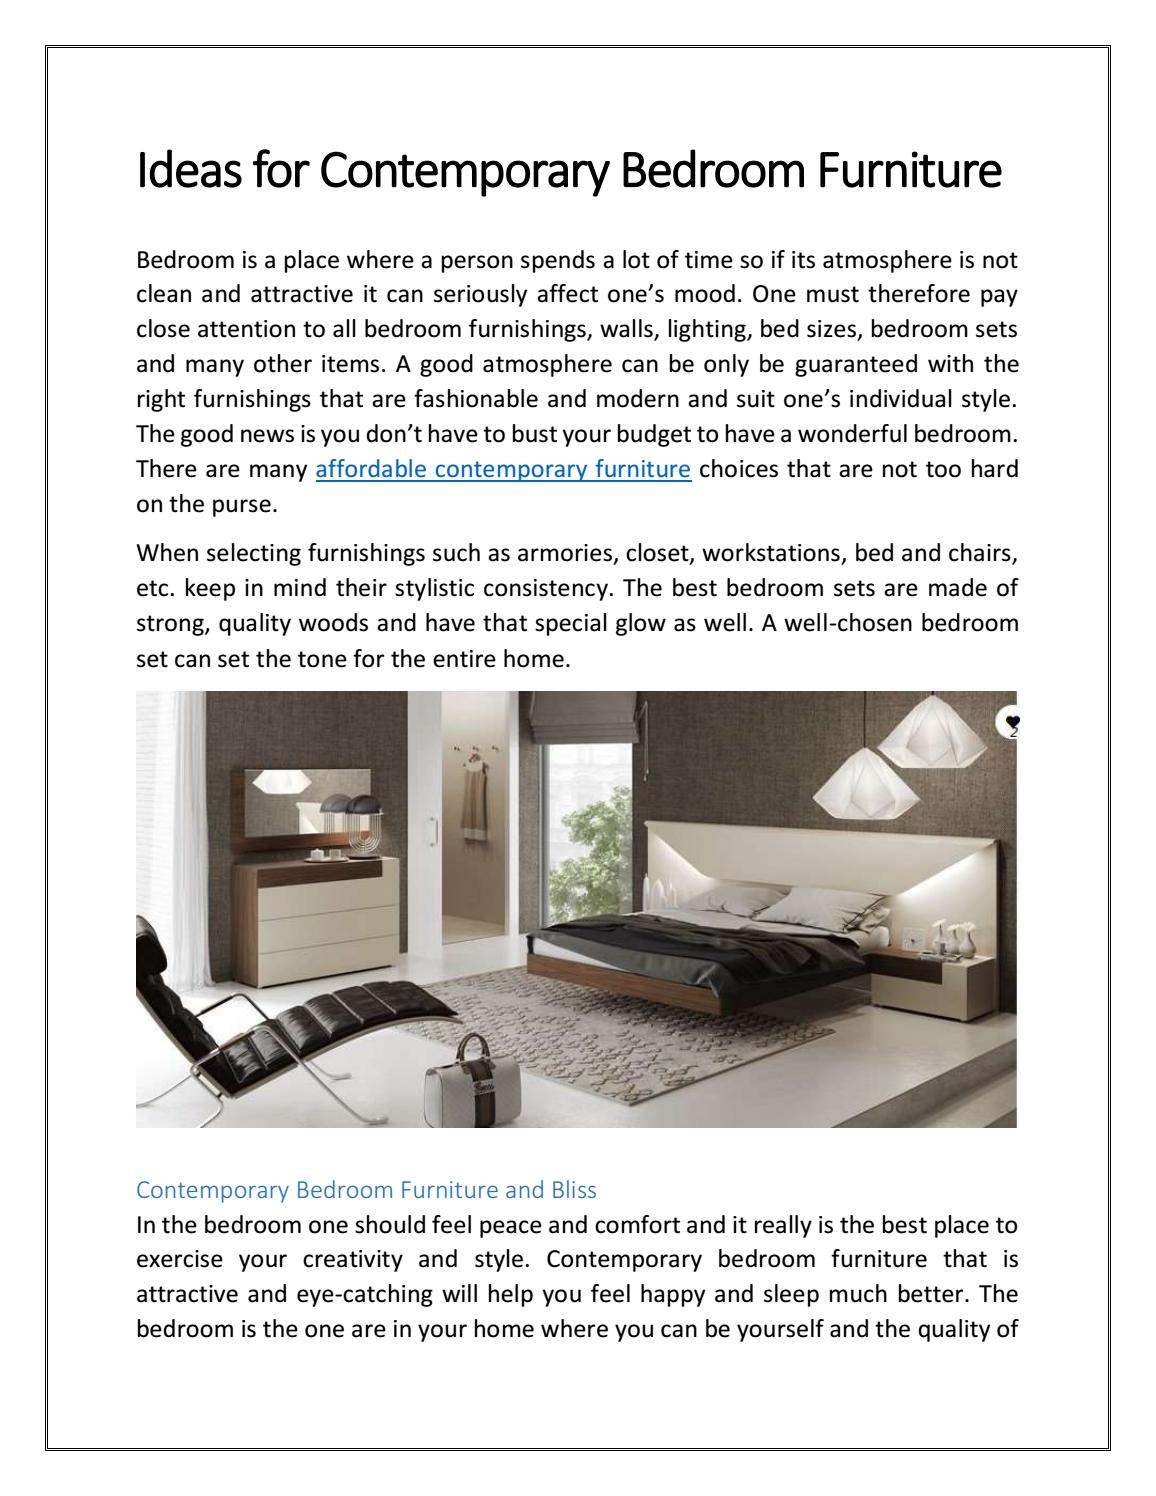 Ideas For Contemporary Bedroom Furniture By Modtempo Issuu